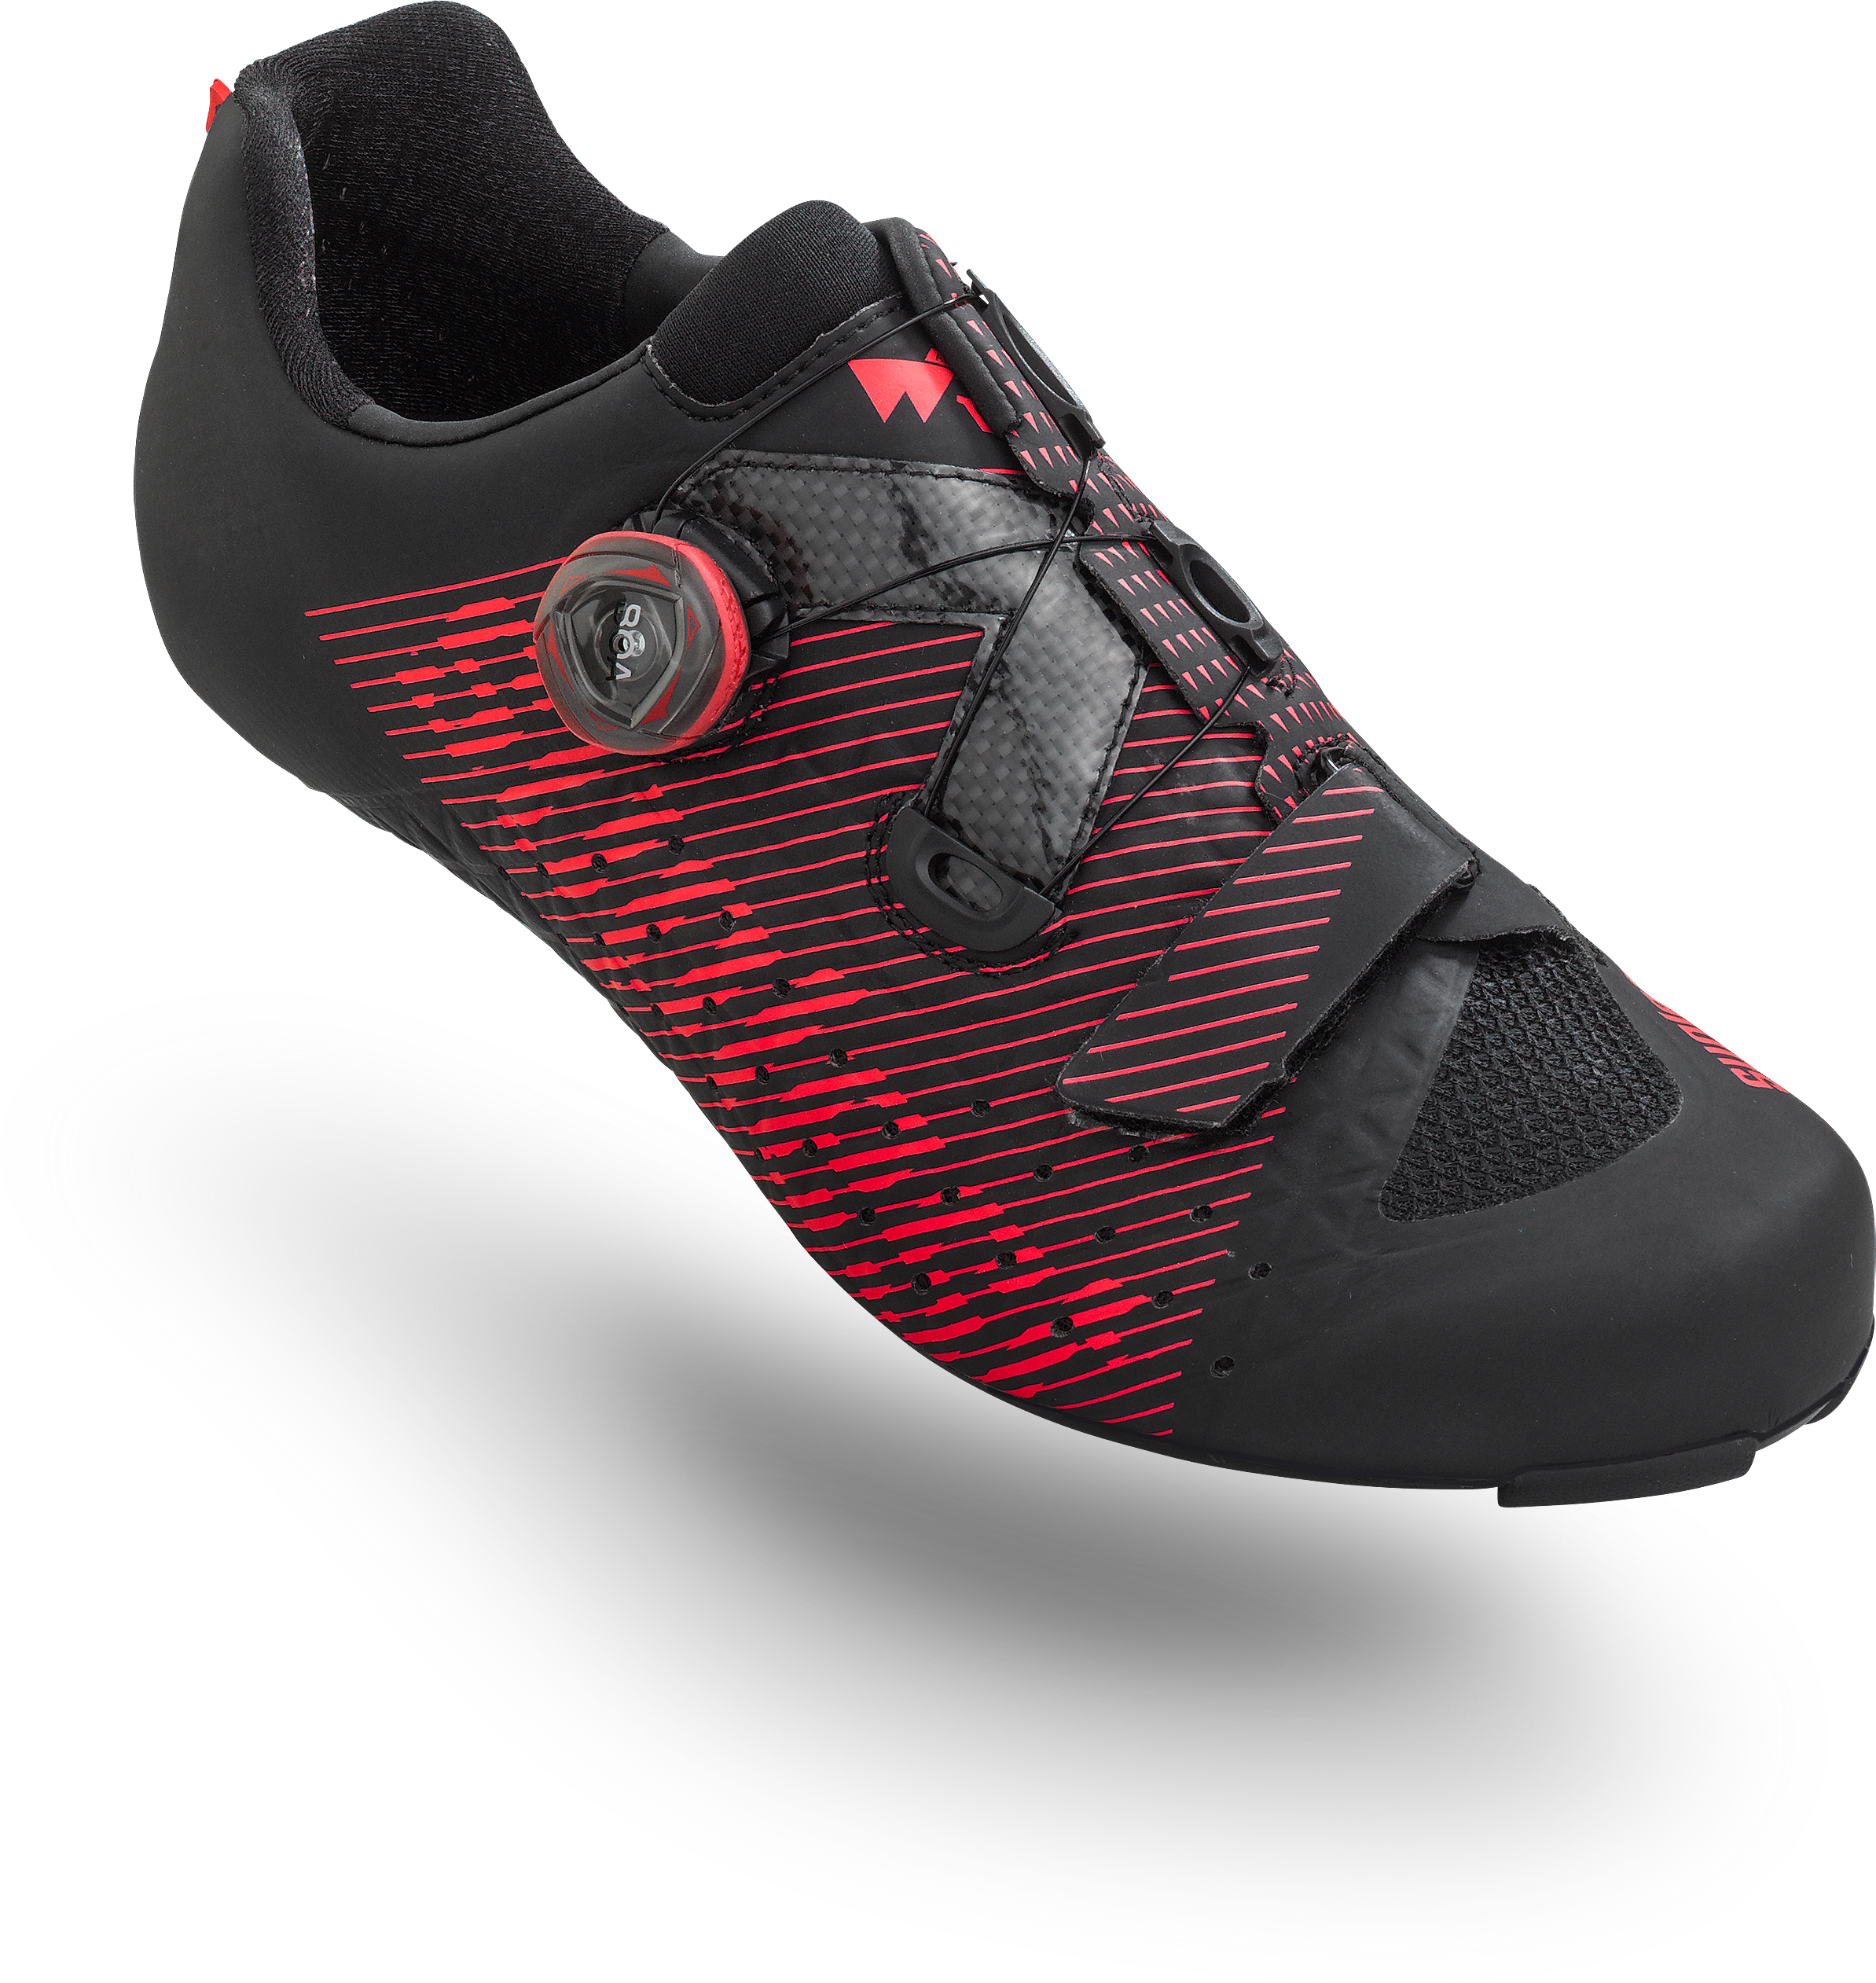 Suplest Edge3 BOA IP1 Road Shoe | Shoes and overlays